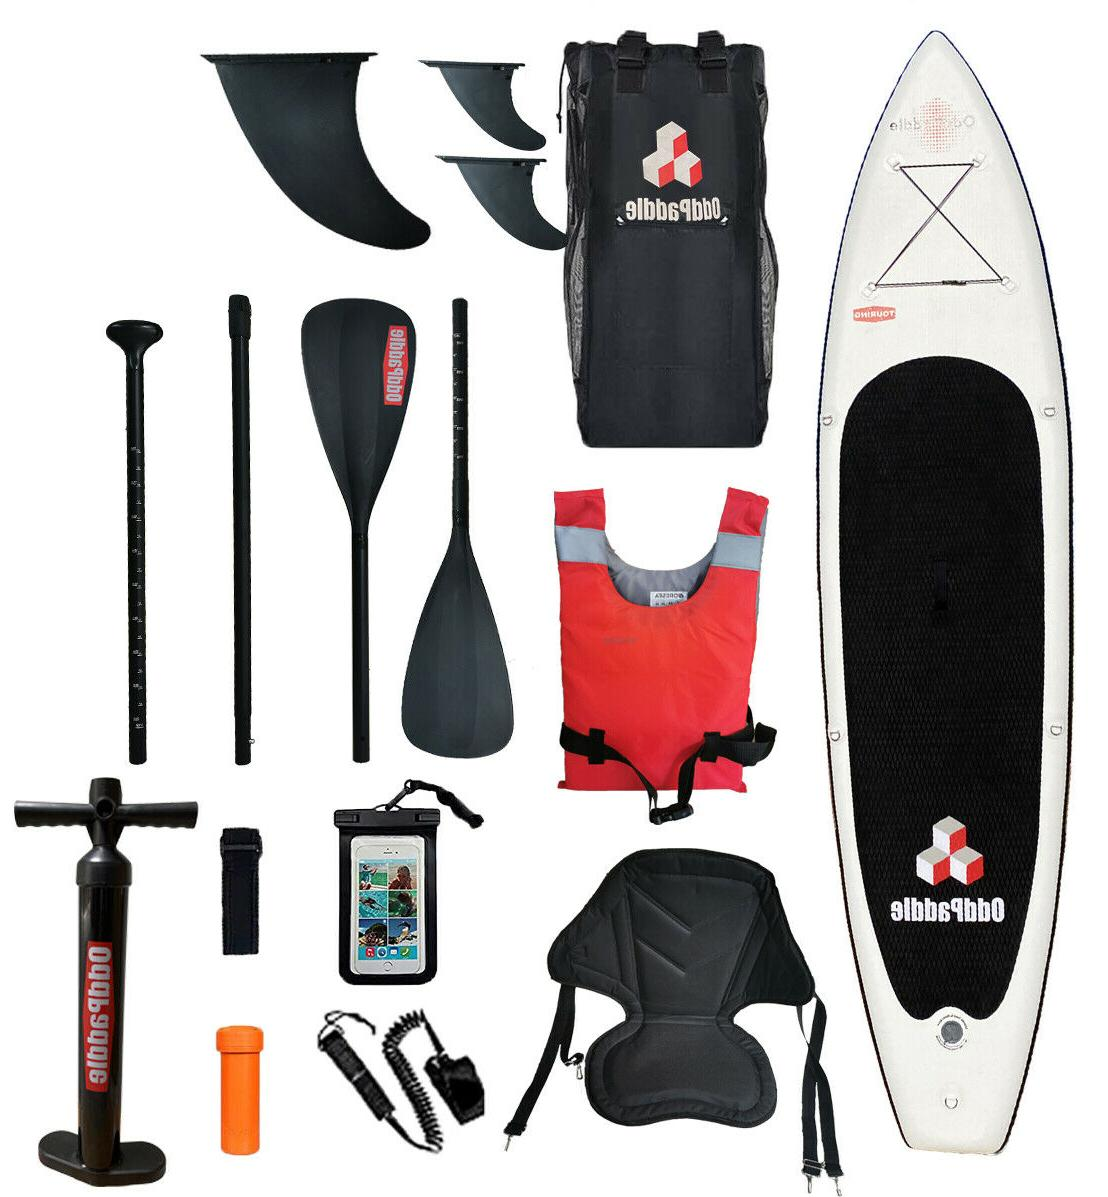 Stand isup paddle accesories included